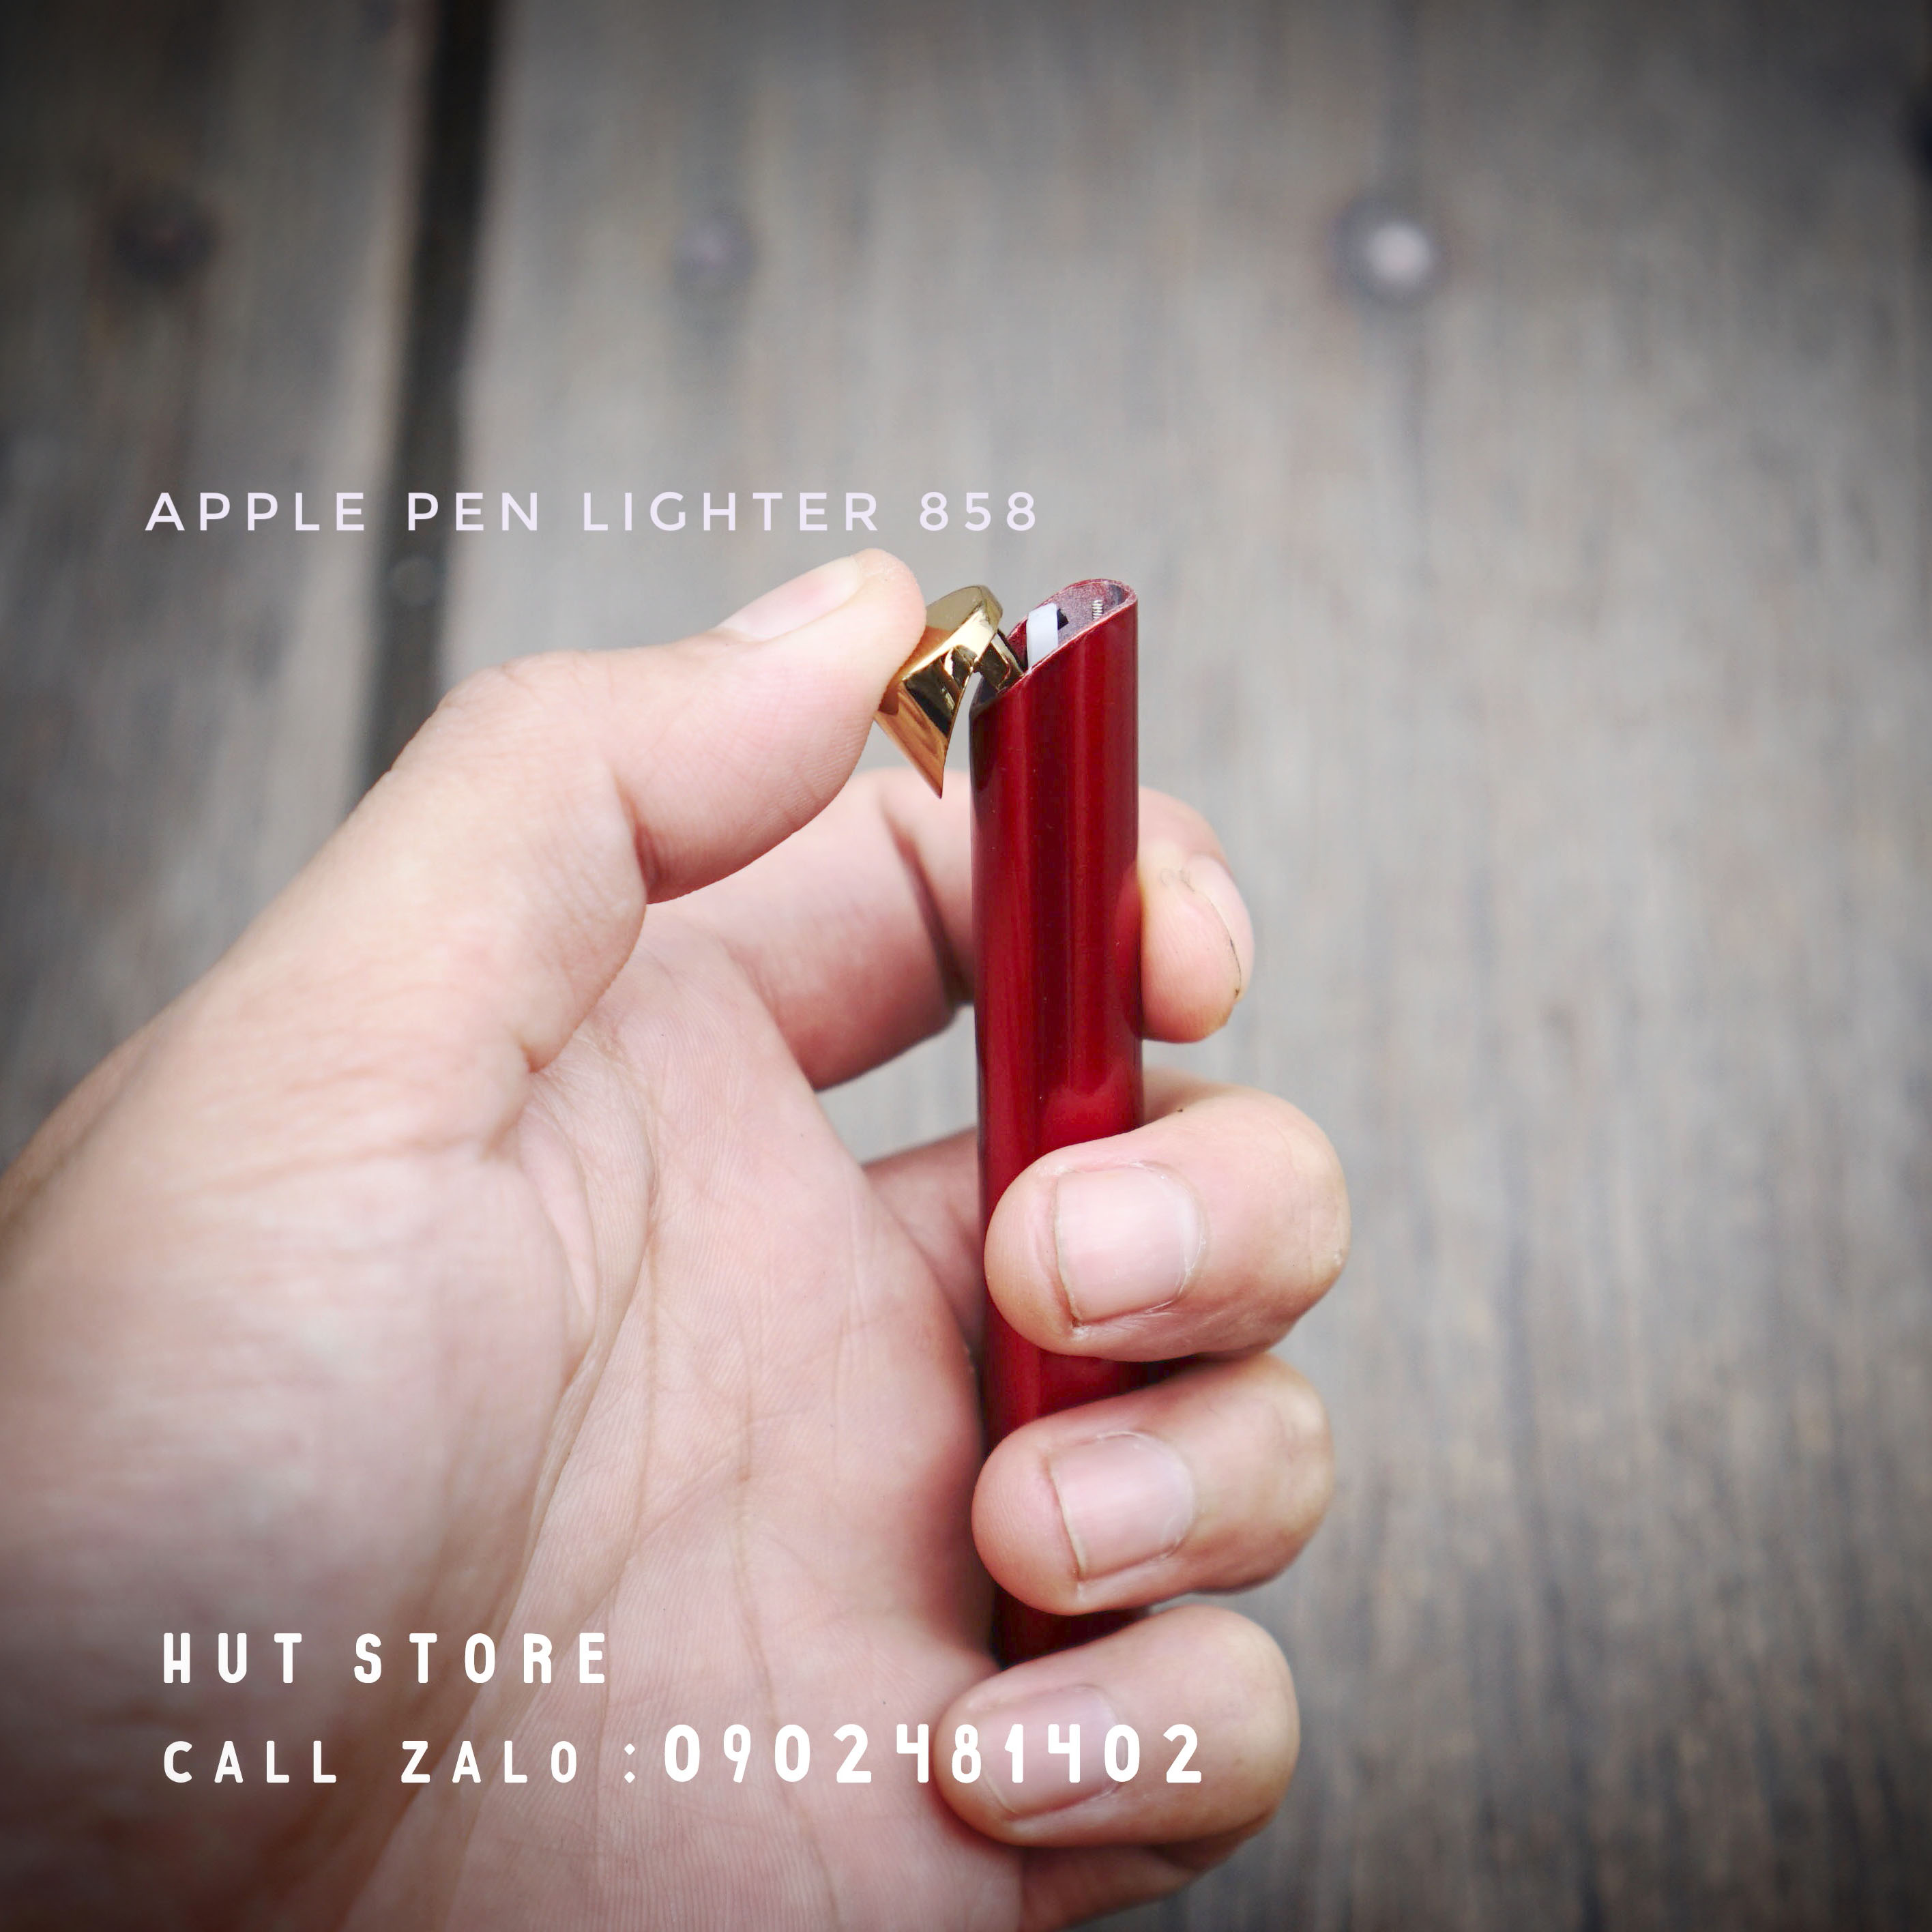 Bật lửa gas Apple Pen 858